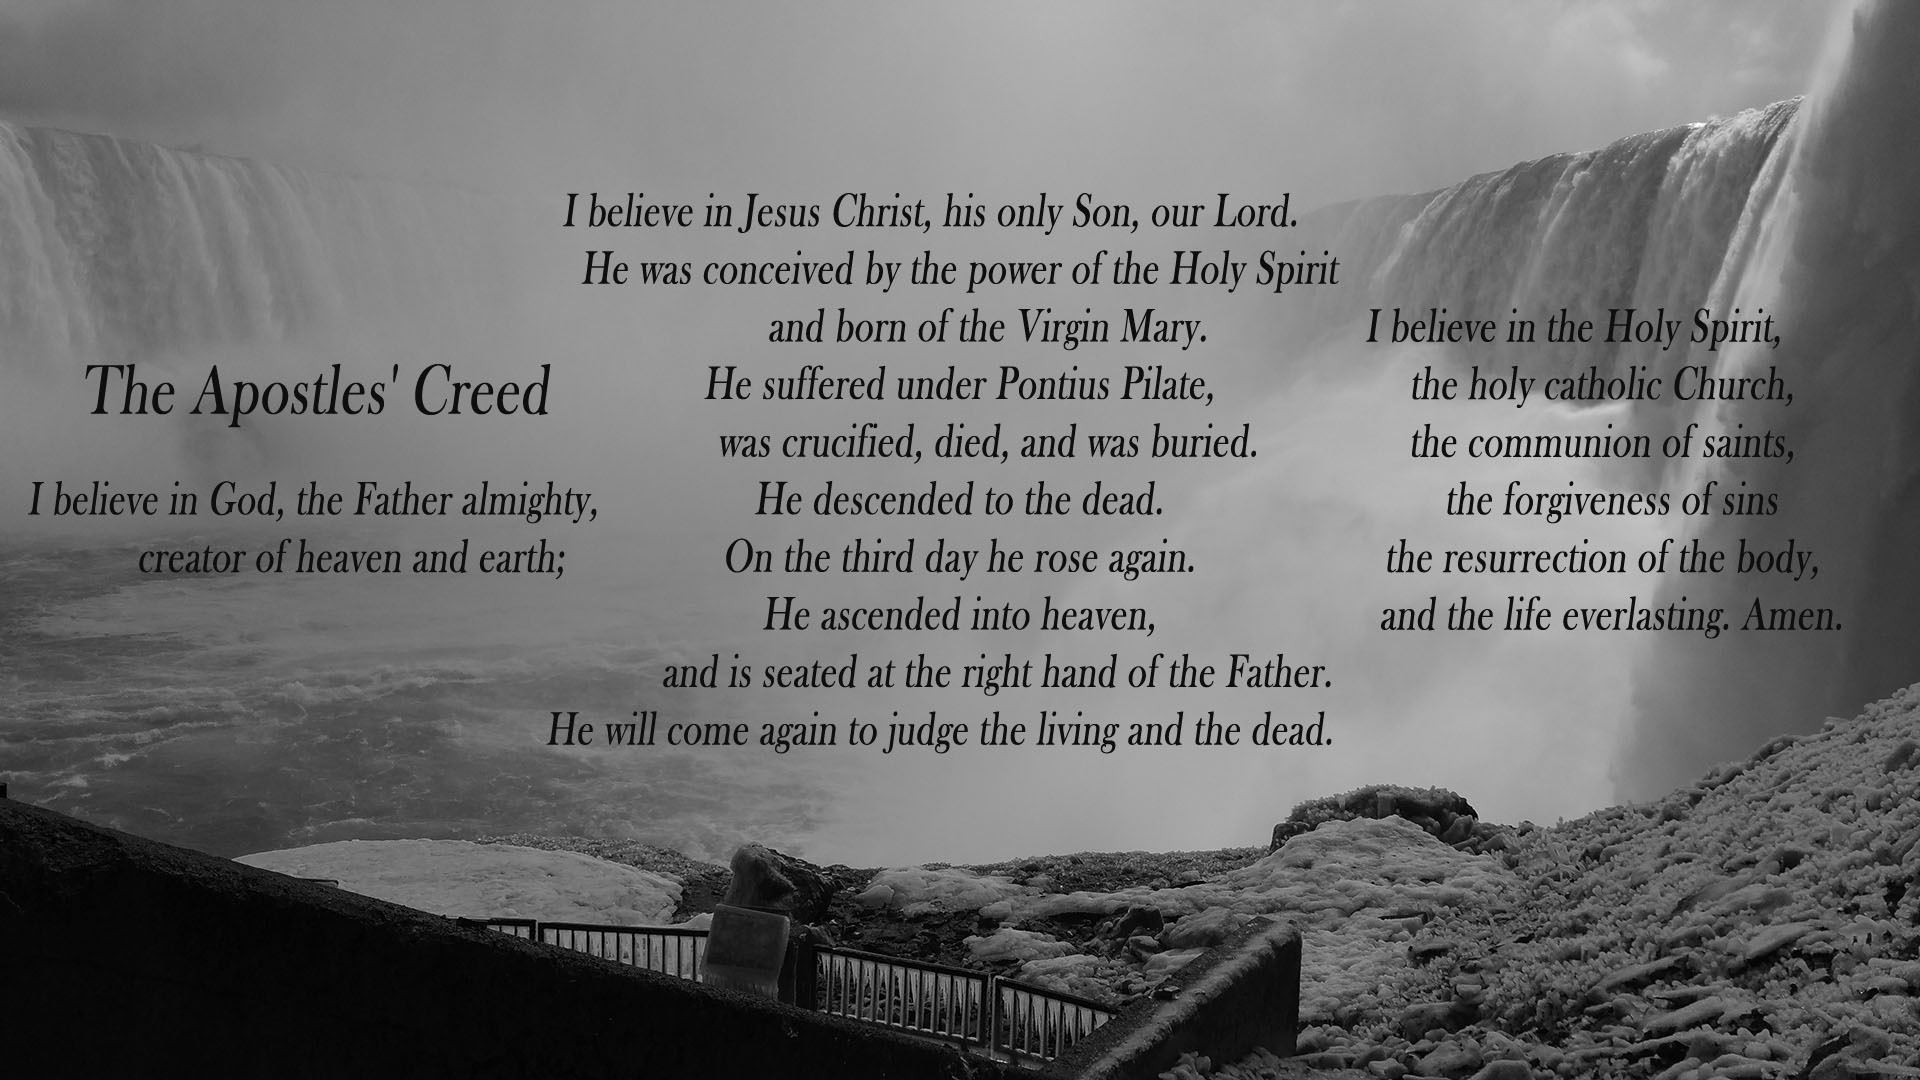 Why teach the Creed and when you were baptized in the early church